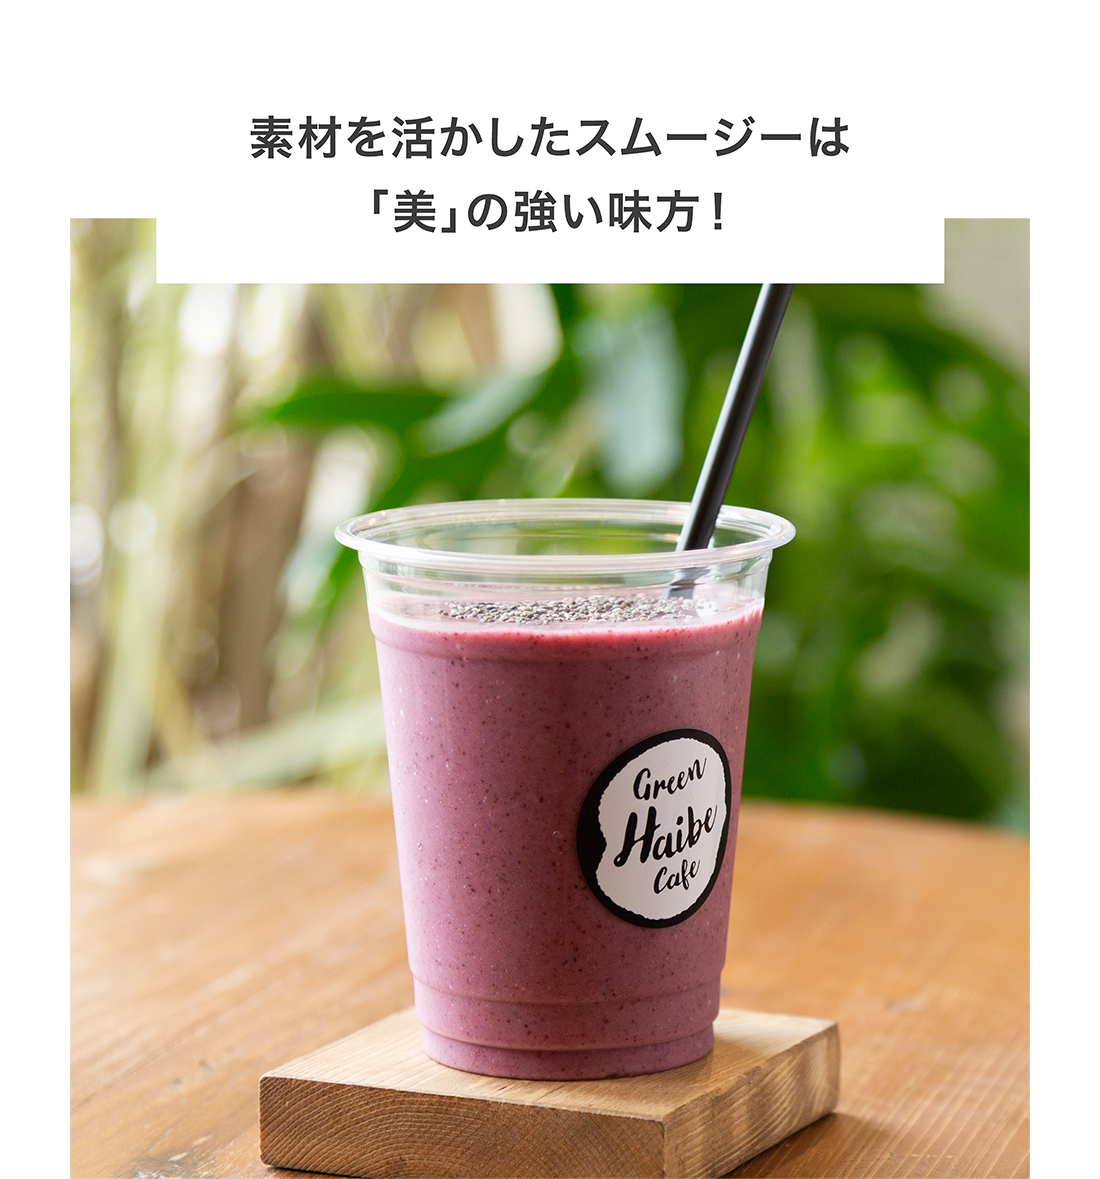 SMOOTHIE(BEAUTY) Green Haibe Cafeグリーンハイブカフェ